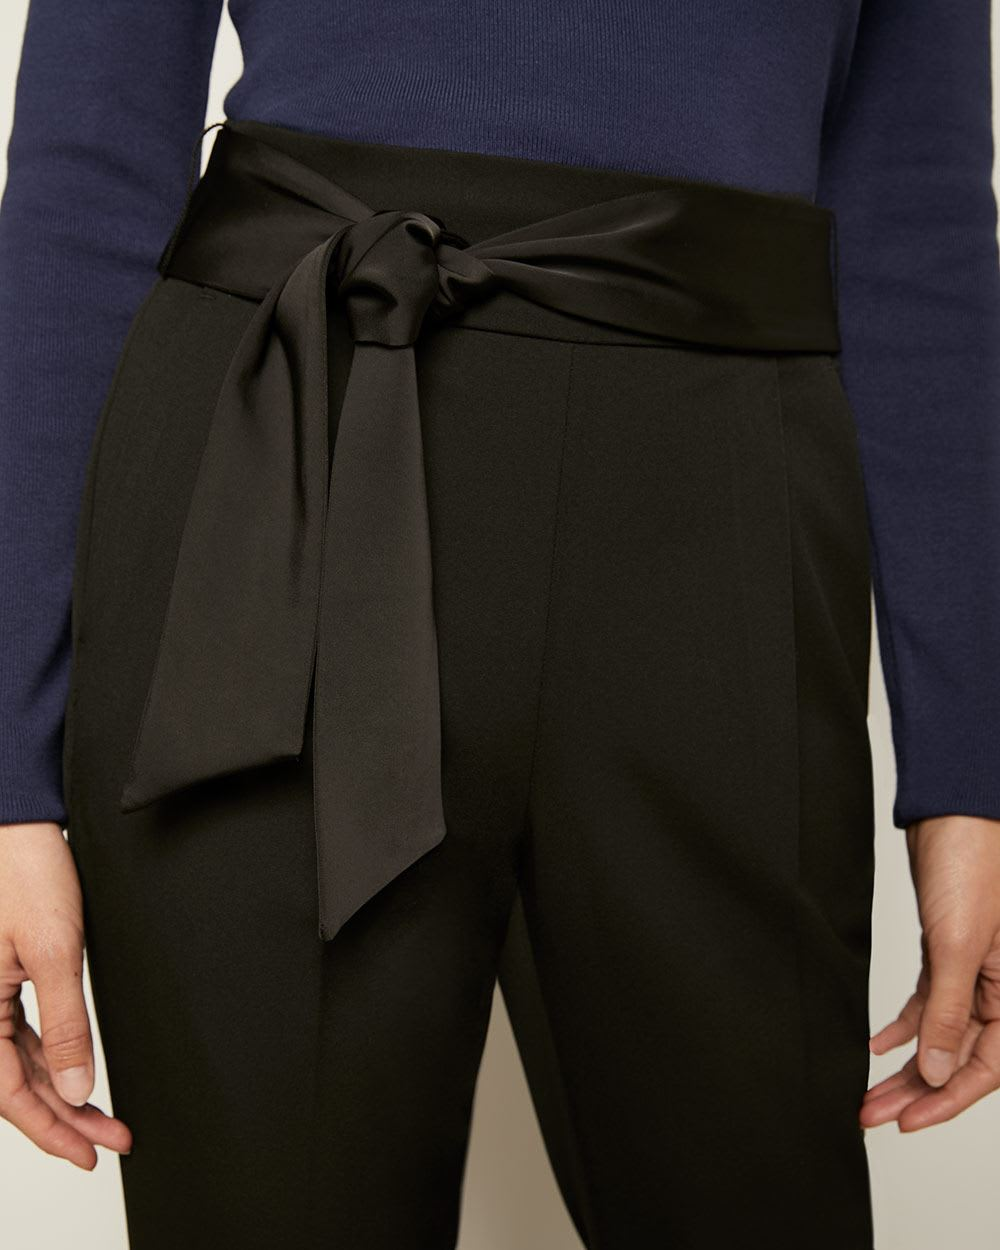 Black Ultra High-Waist Tapered Leg Pant with Satin Sash